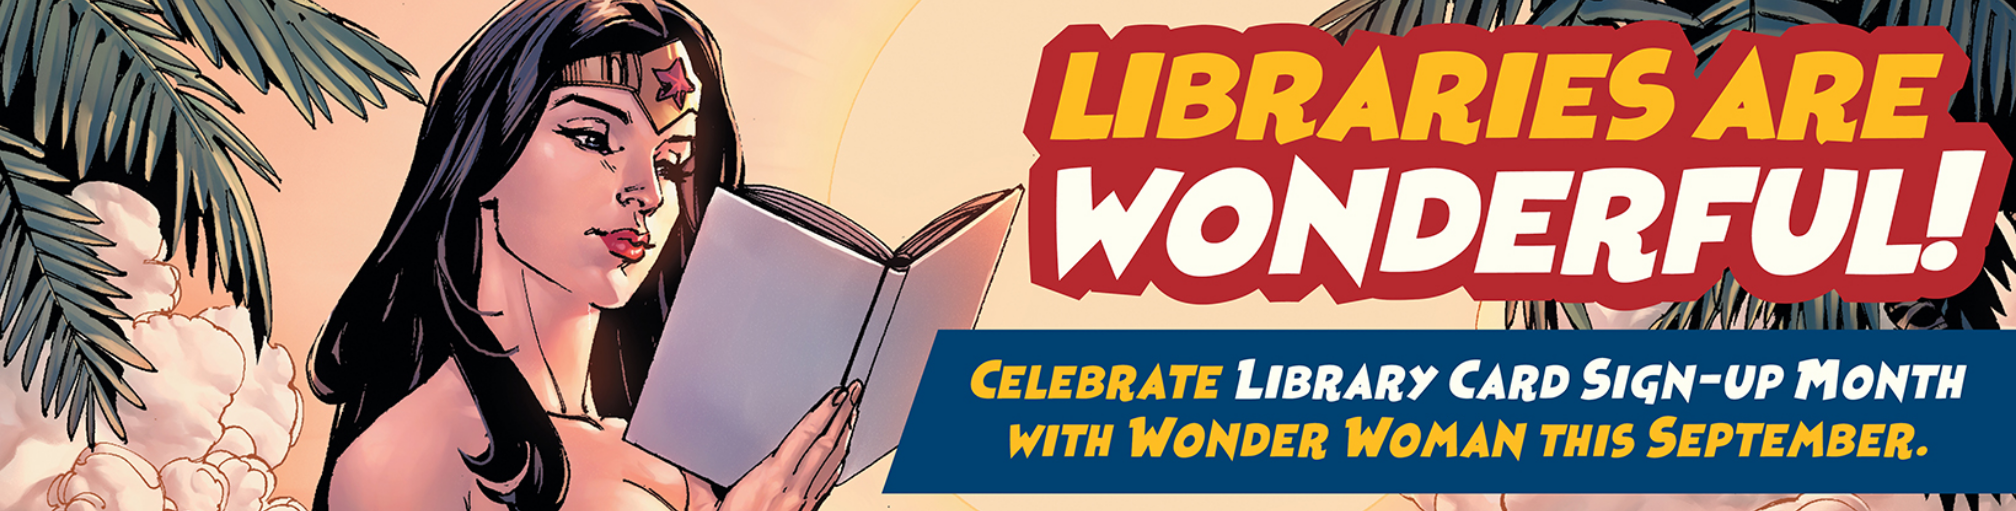 Celebrate Library Card Sign-Up Month